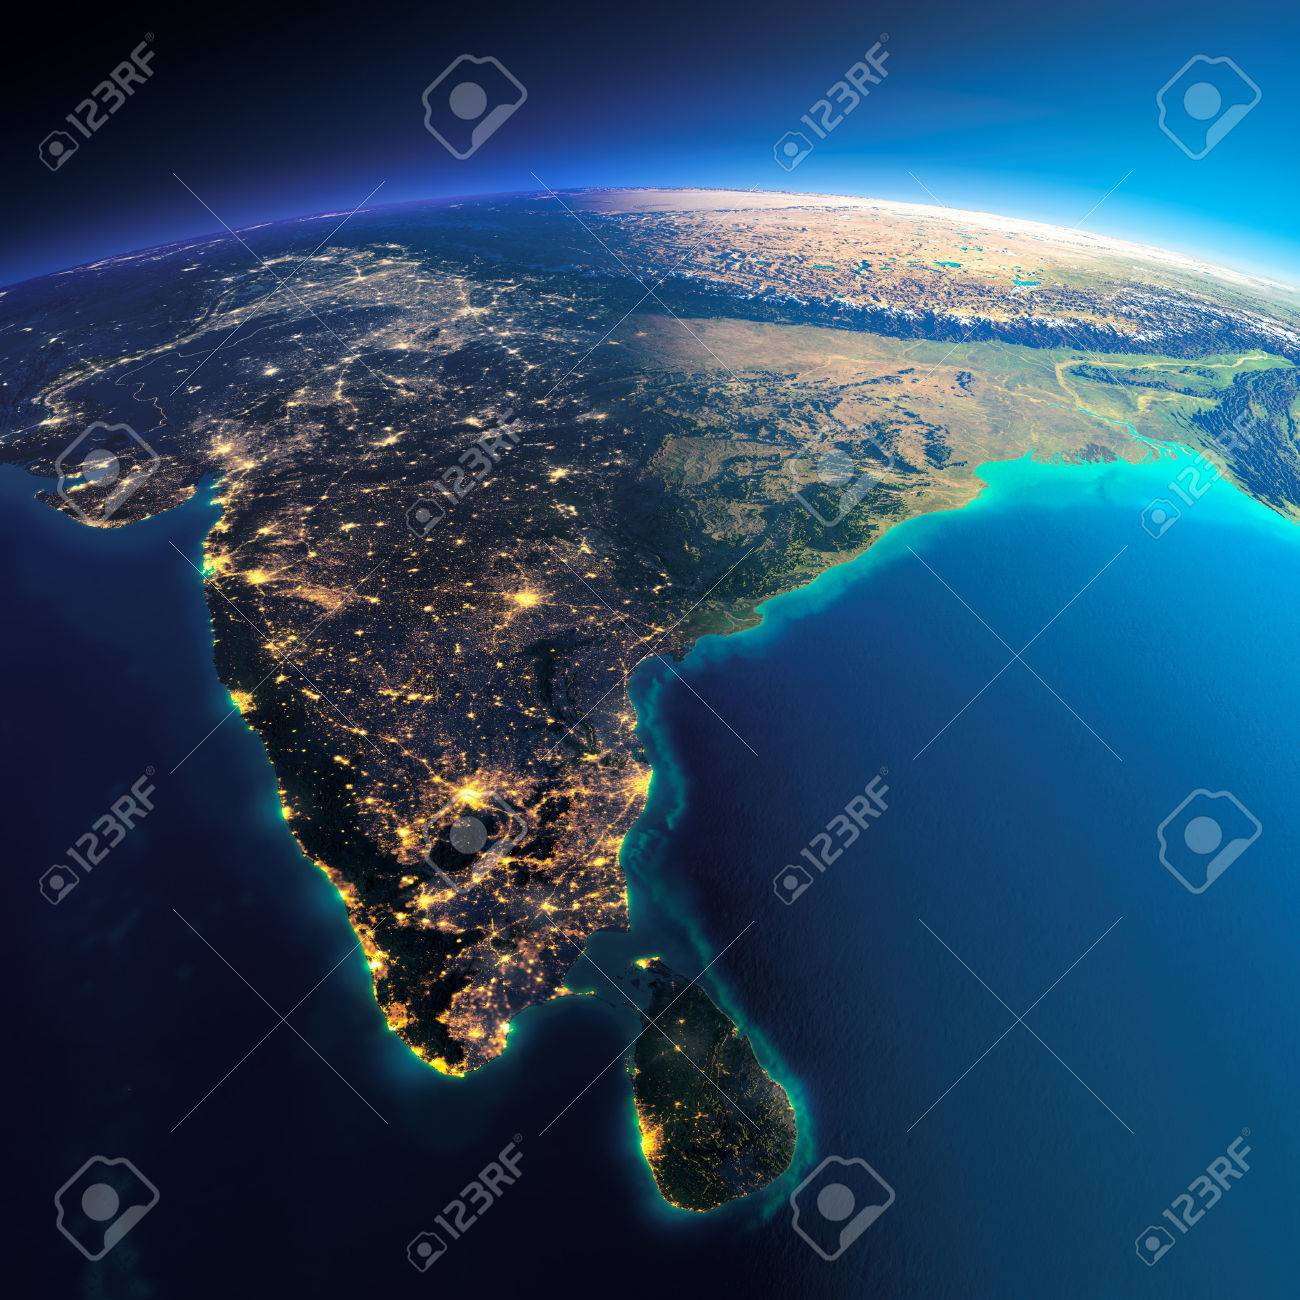 Highly detailed planet Earth. Night with glowing city lights gives way to day. The boundary of the night & day. India and Sri Lanka. Elements of this image furnished by NASA - 39100905